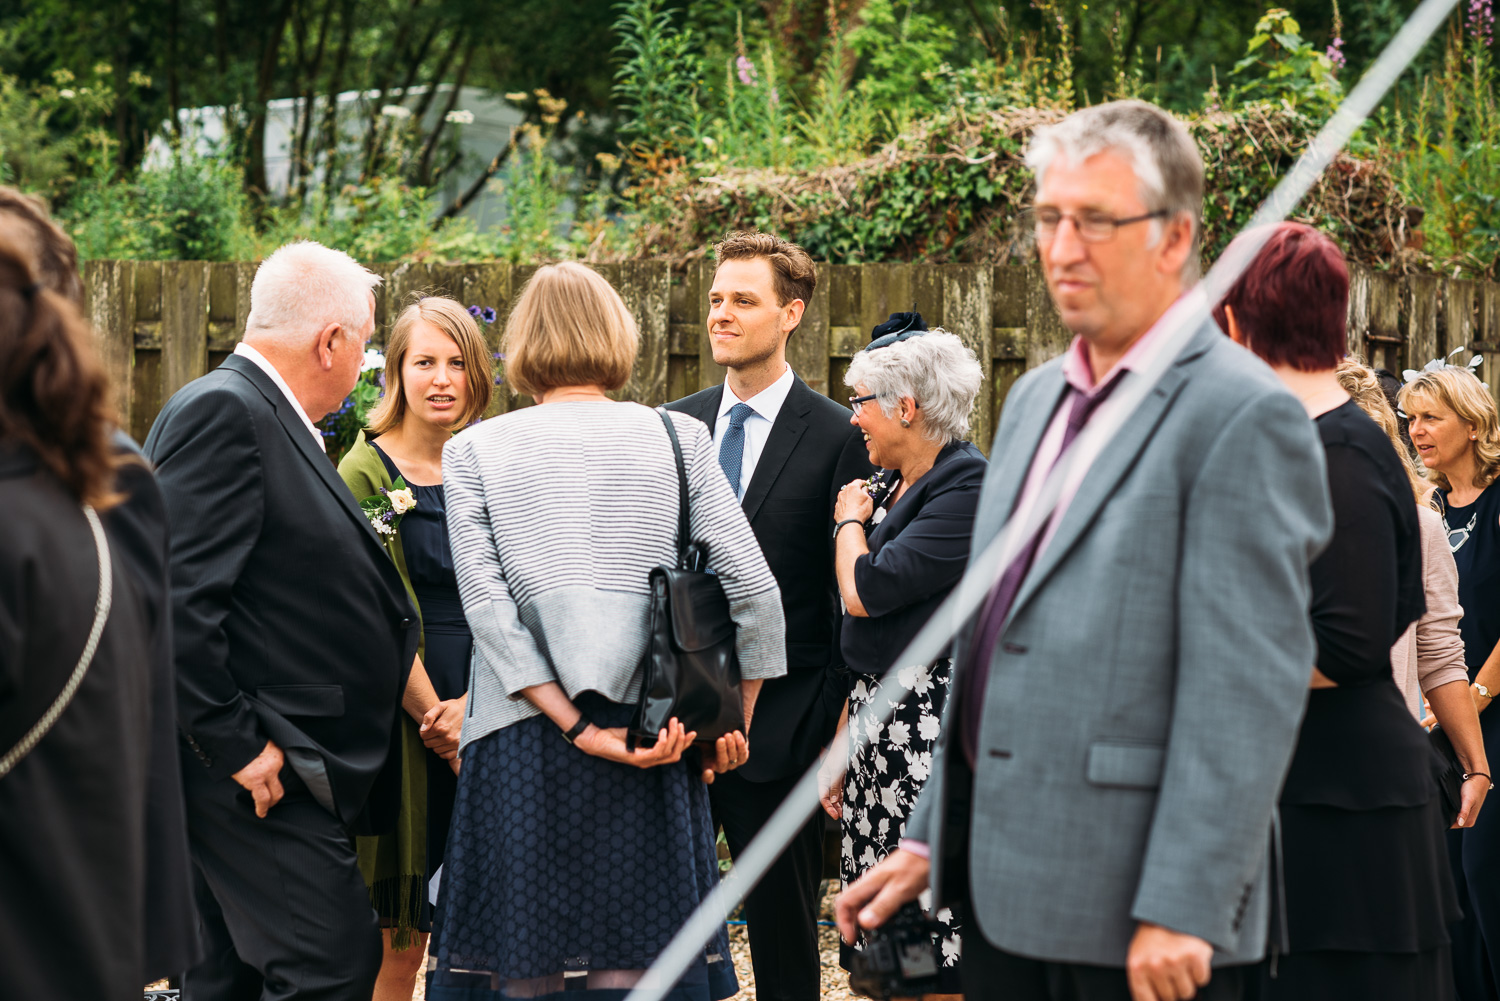 back-garden-wedding-12.jpg